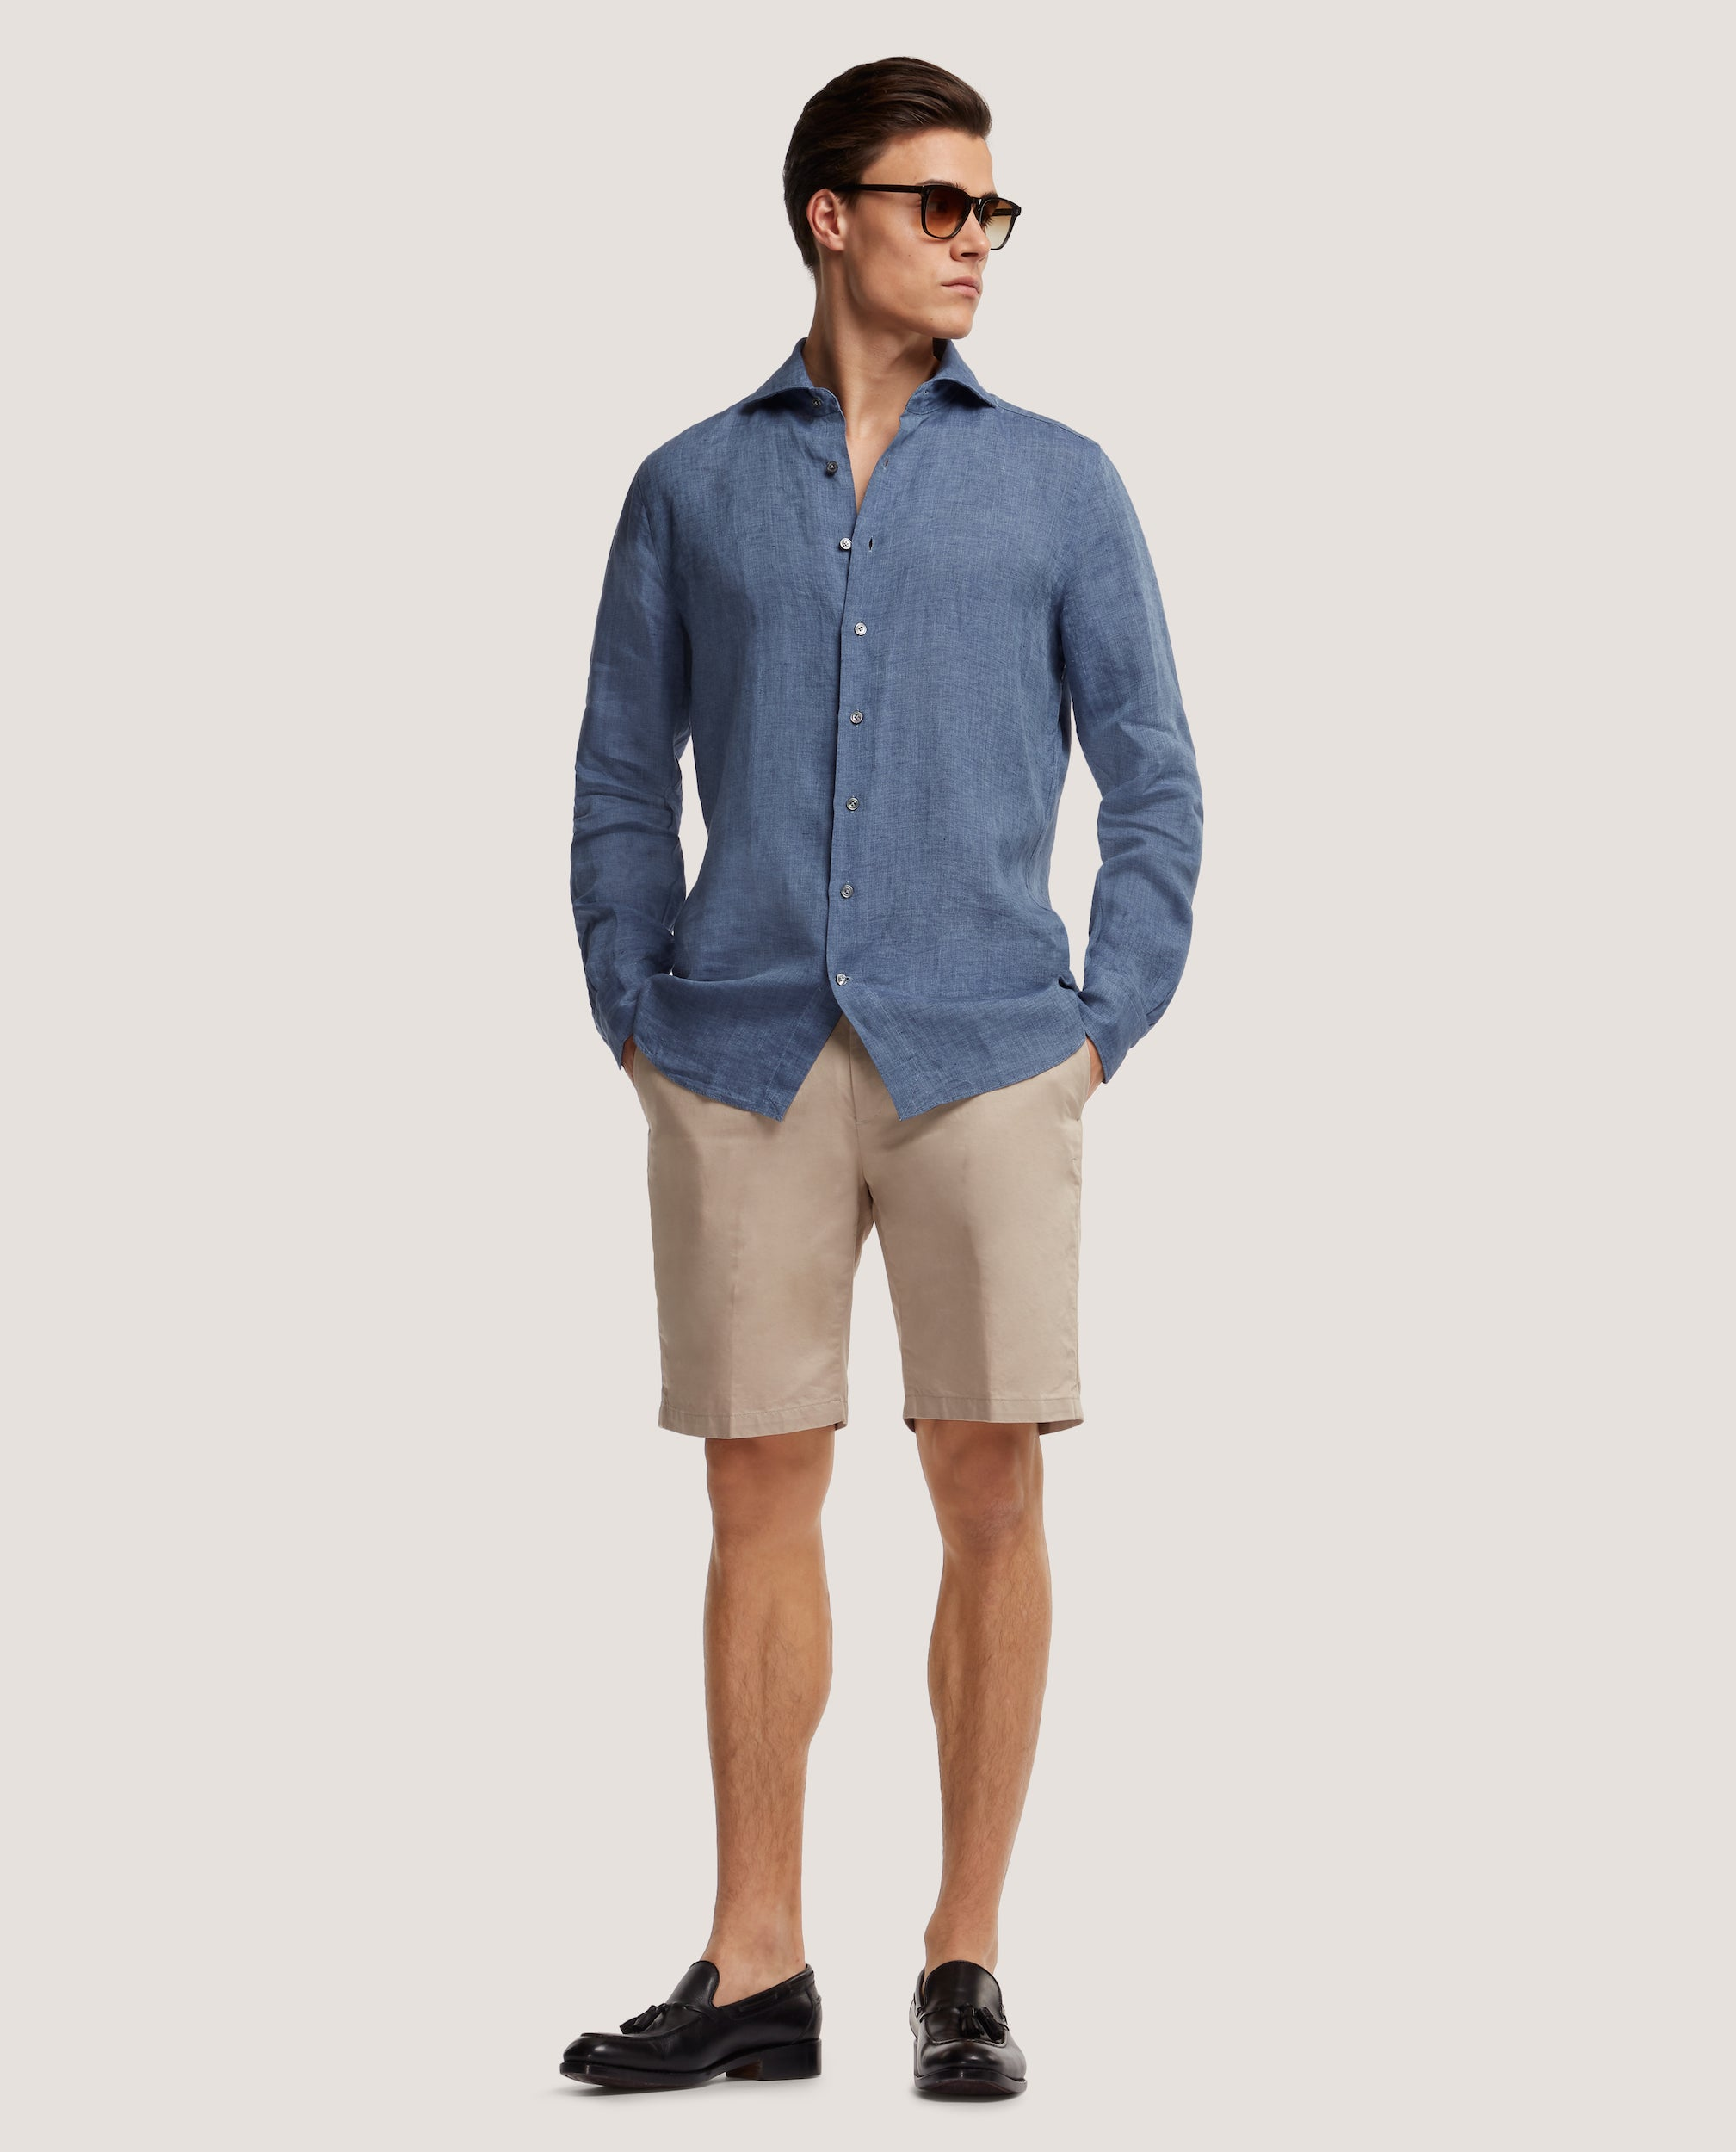 EVRON Slim fit shirt | Linen